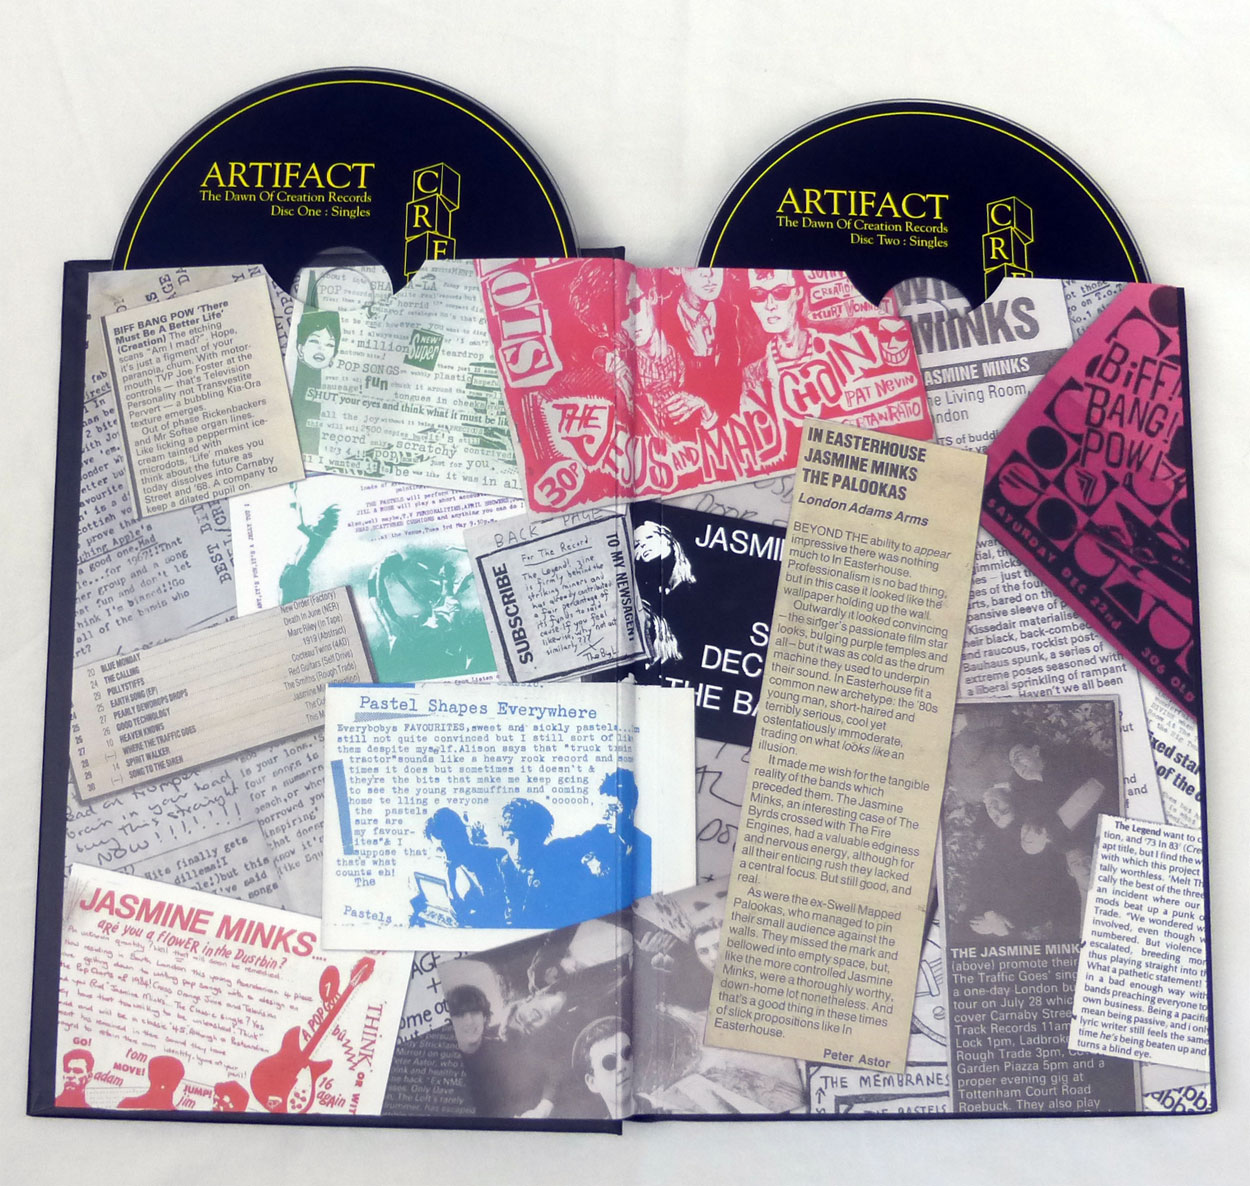 FIRST PICTURES / Artifact: The Dawn of Creation Records 5CD